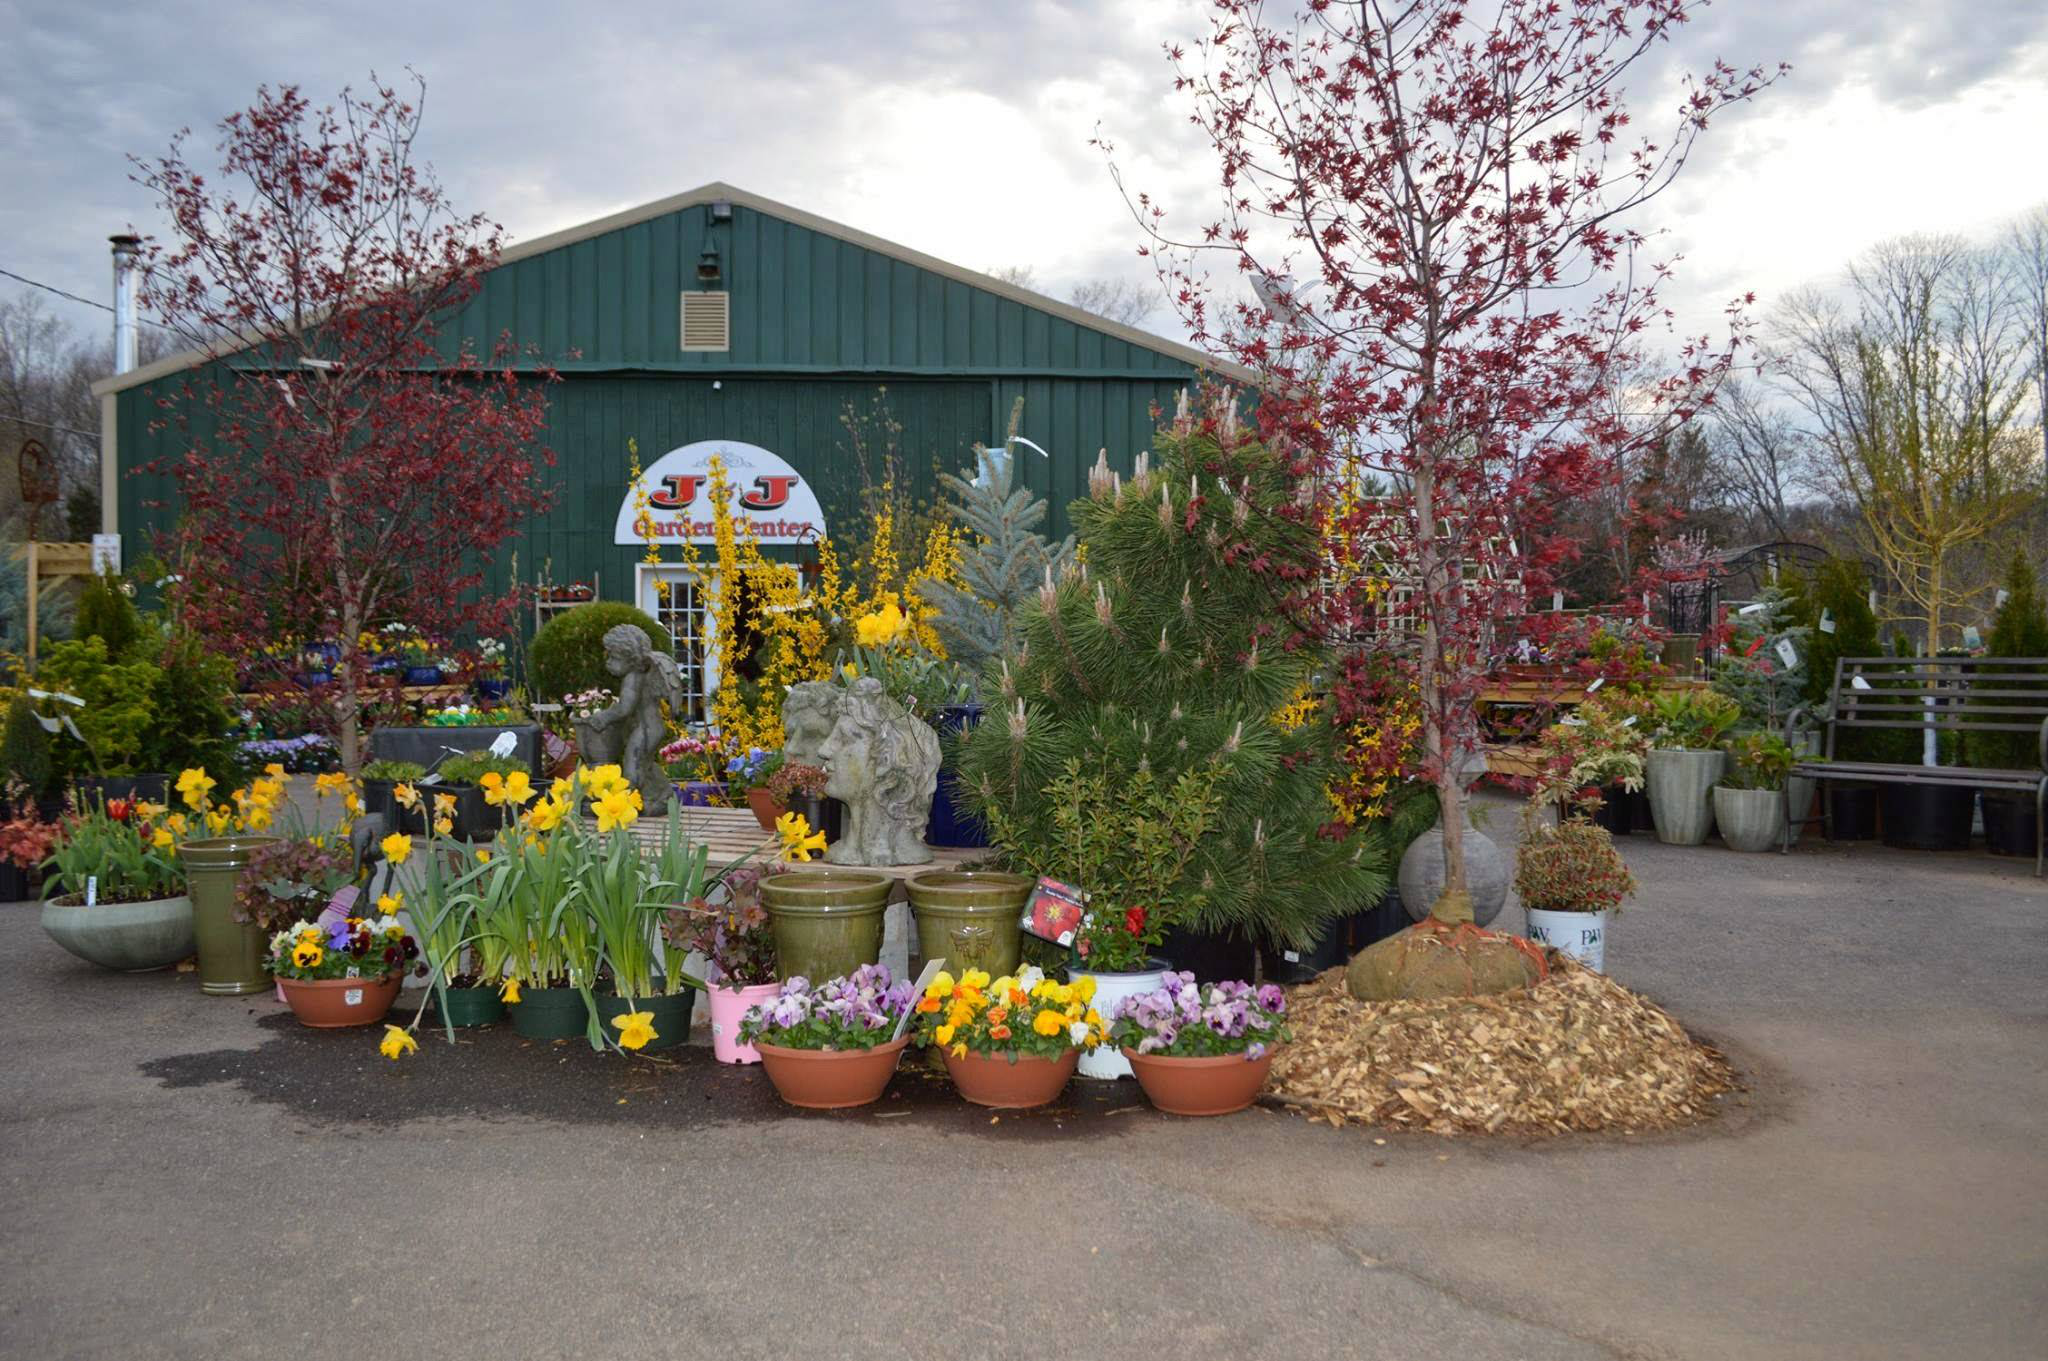 Hyams Landscaping And Garden Center : News roundup landscaping company recovers from fire